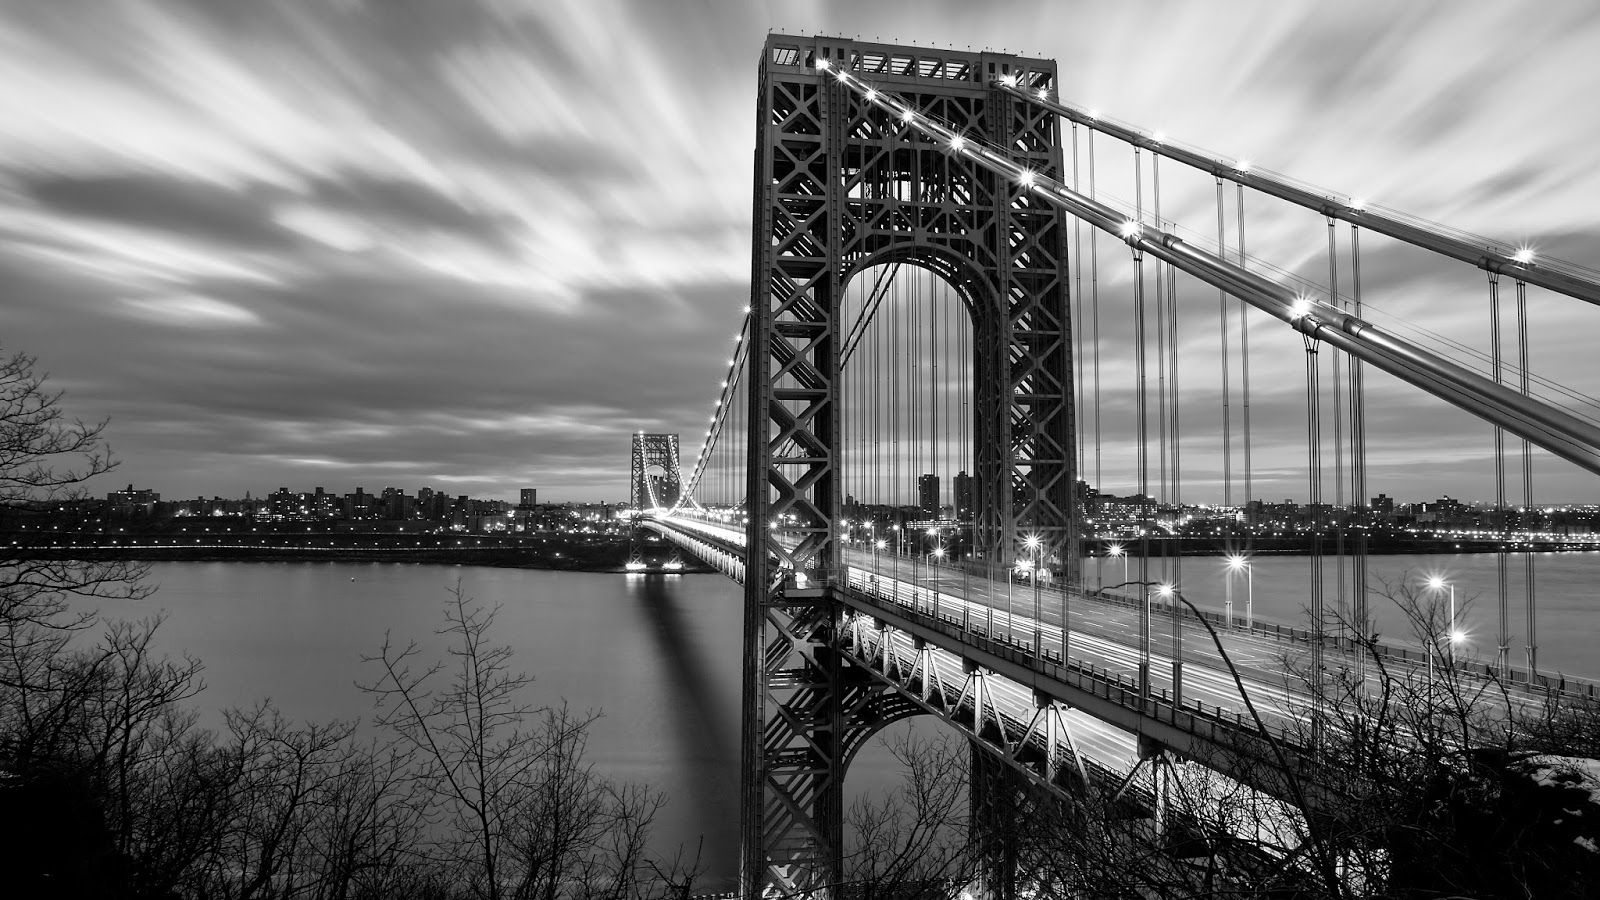 Black And White Hd Wallpapers Beautiful Bridges Wallpaper Bridge Wallpaper Bridge Photography Desktop Wallpaper